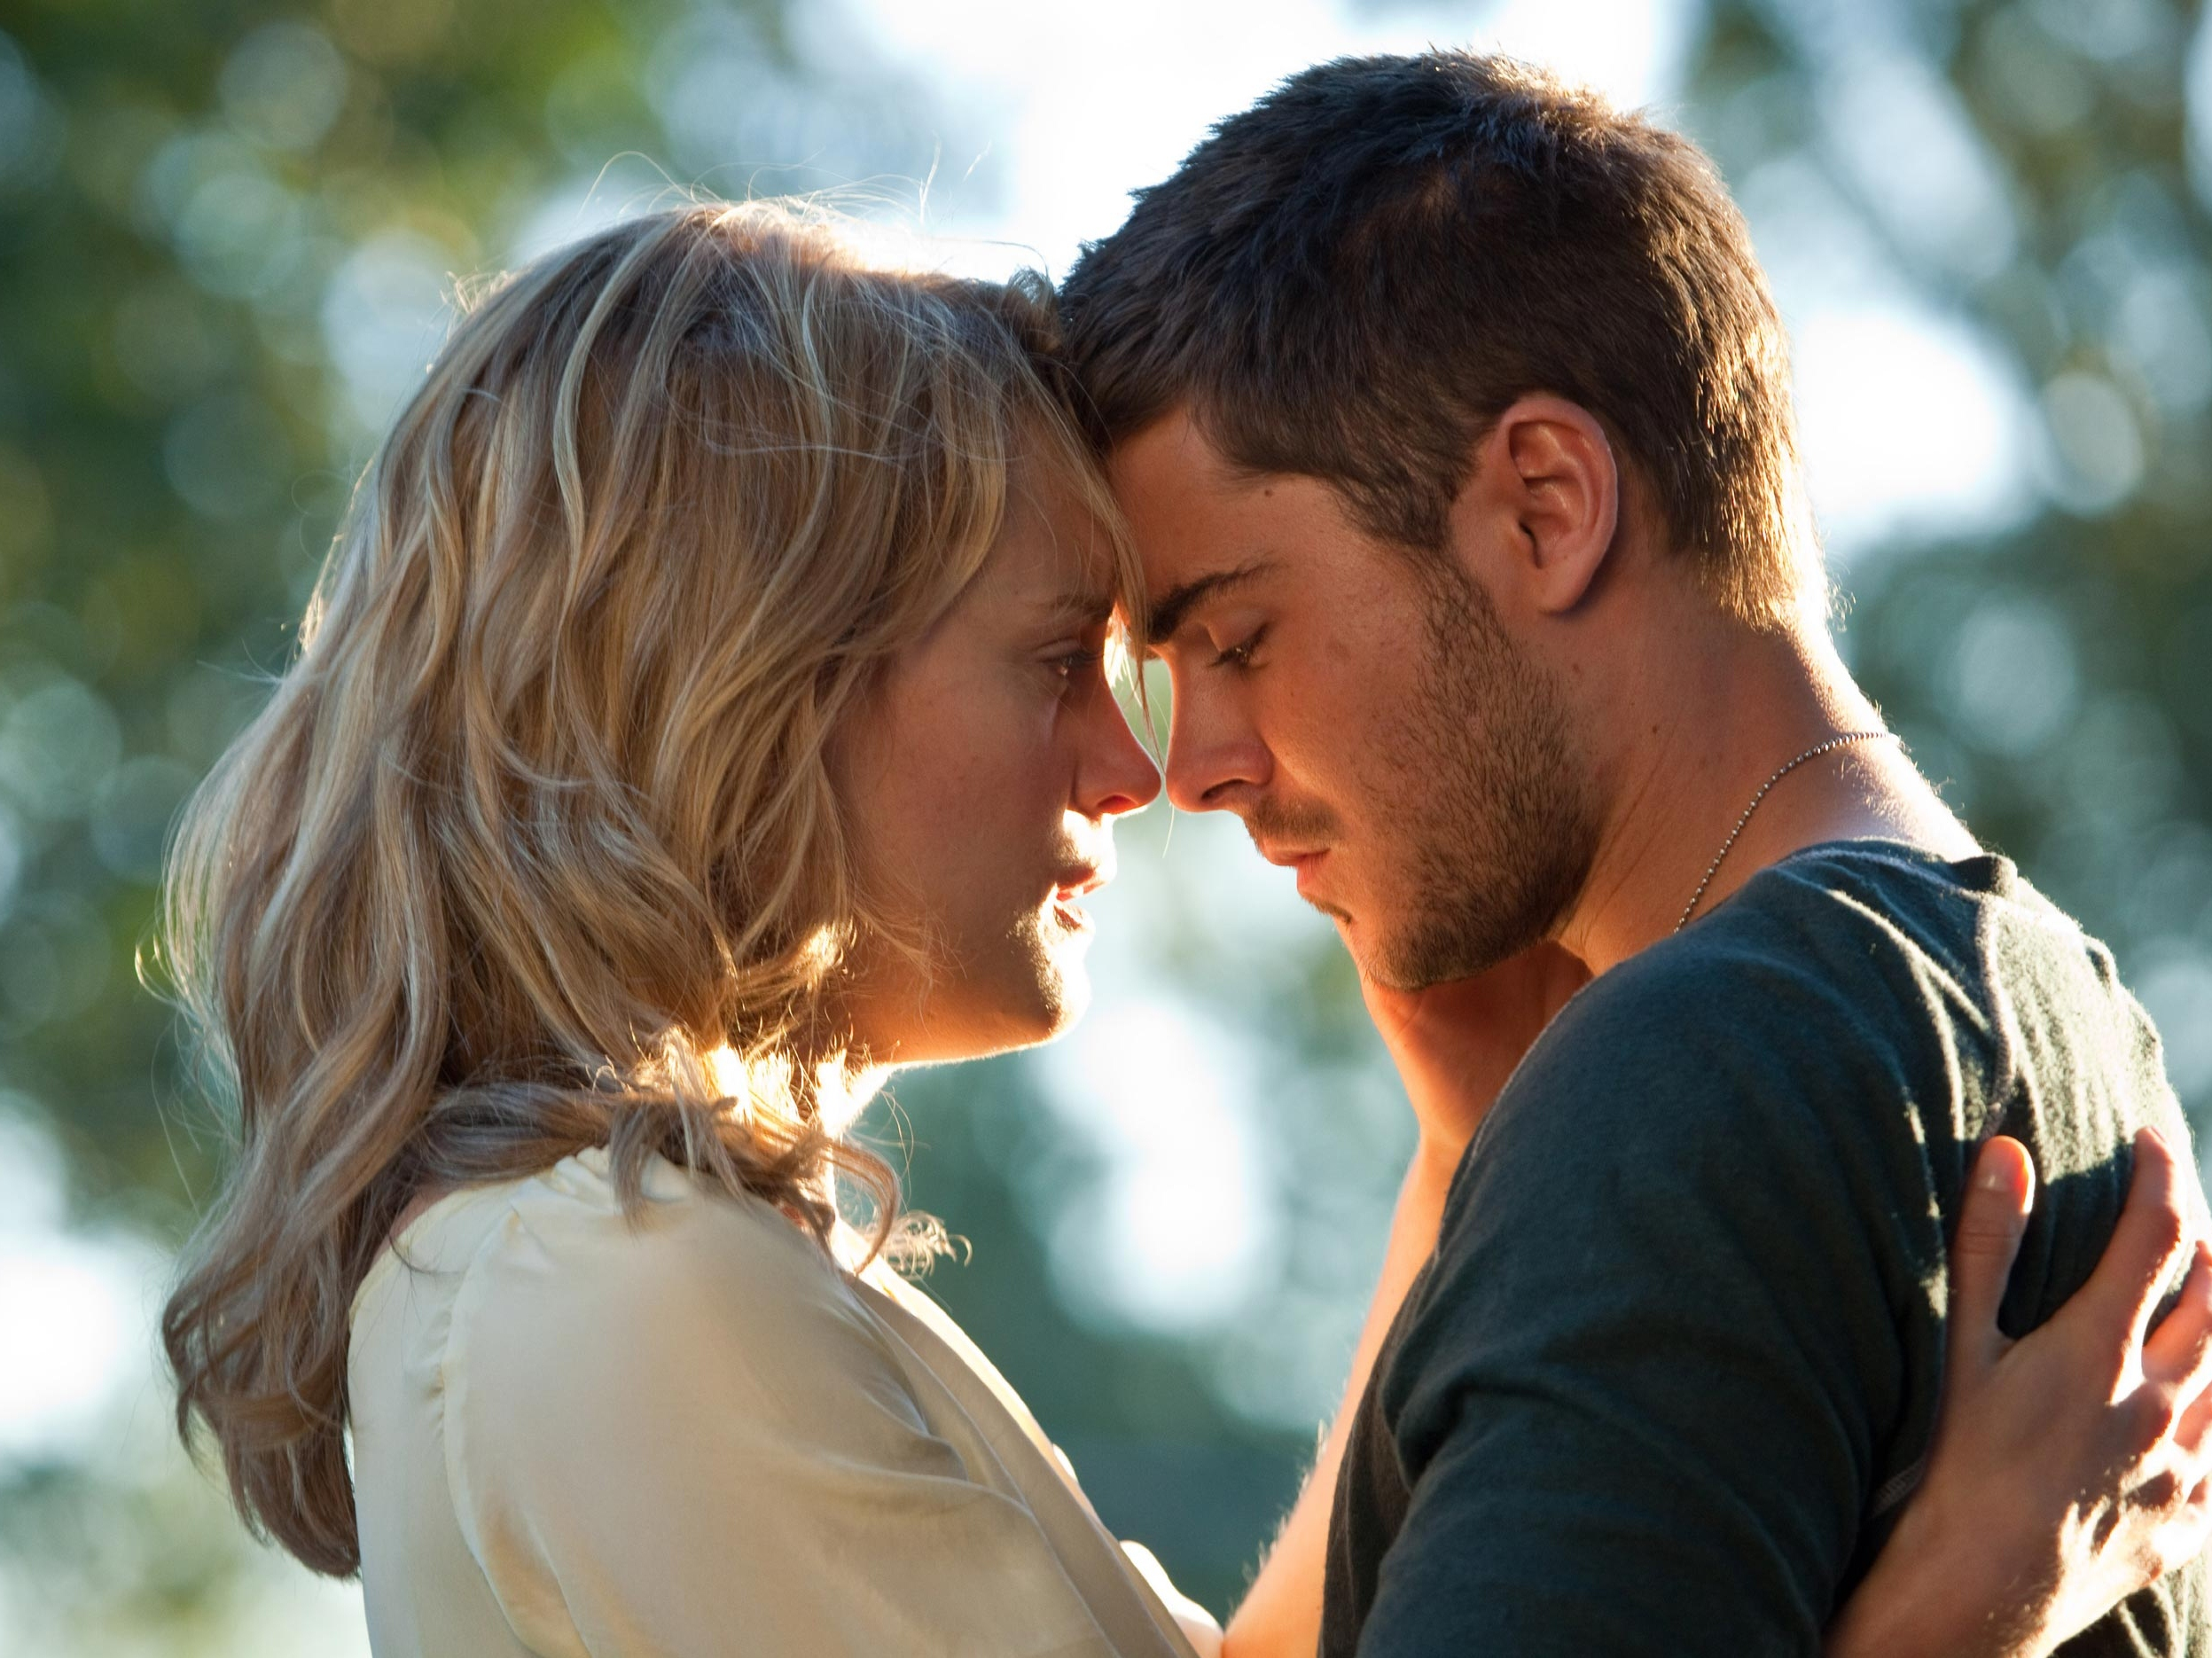 Box Office Predictions: New Romance 'Lucky' to Dethrone 'Hunger Games'